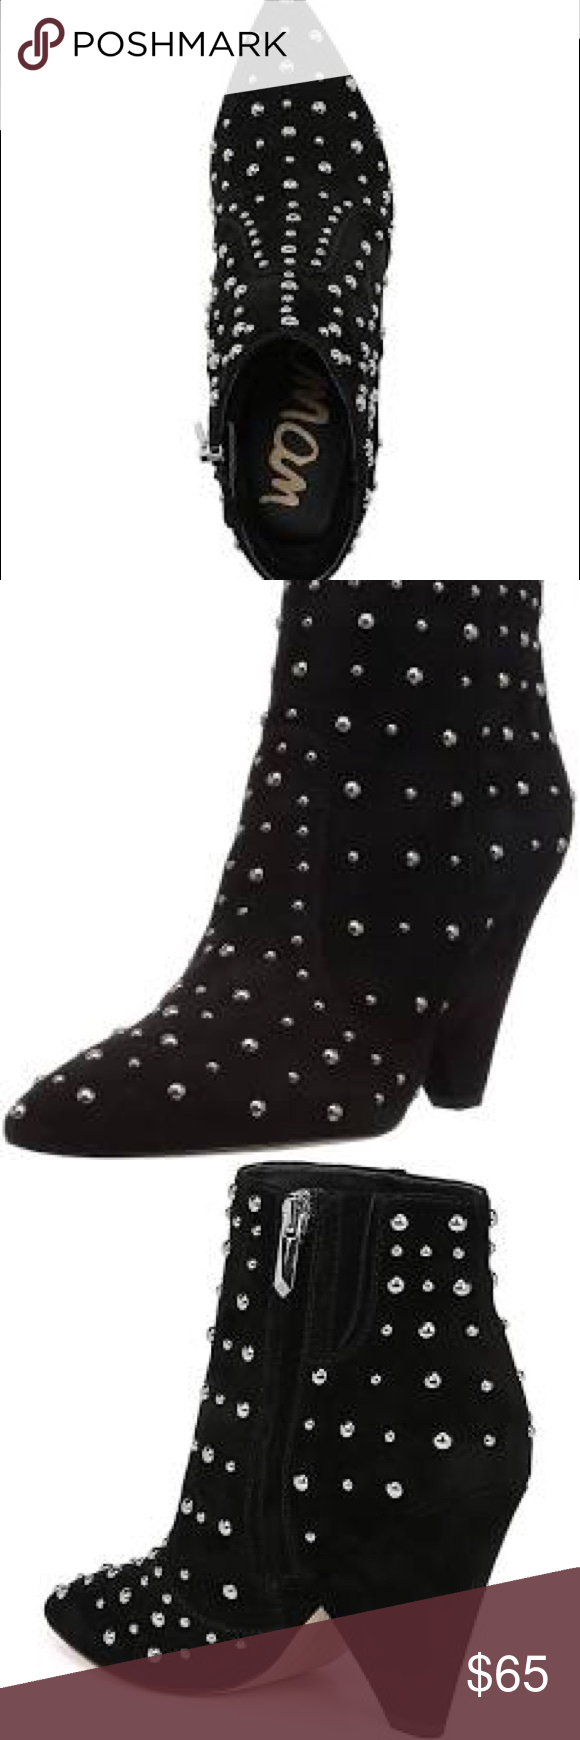 28e5fa273ff2b Sam Edelman Roya studded boot Perfect condition. Worn once to dinner only.  Perfect boot to take up any outfit. Comfortable. Sam Edelman Shoes Ankle  Boots   ...